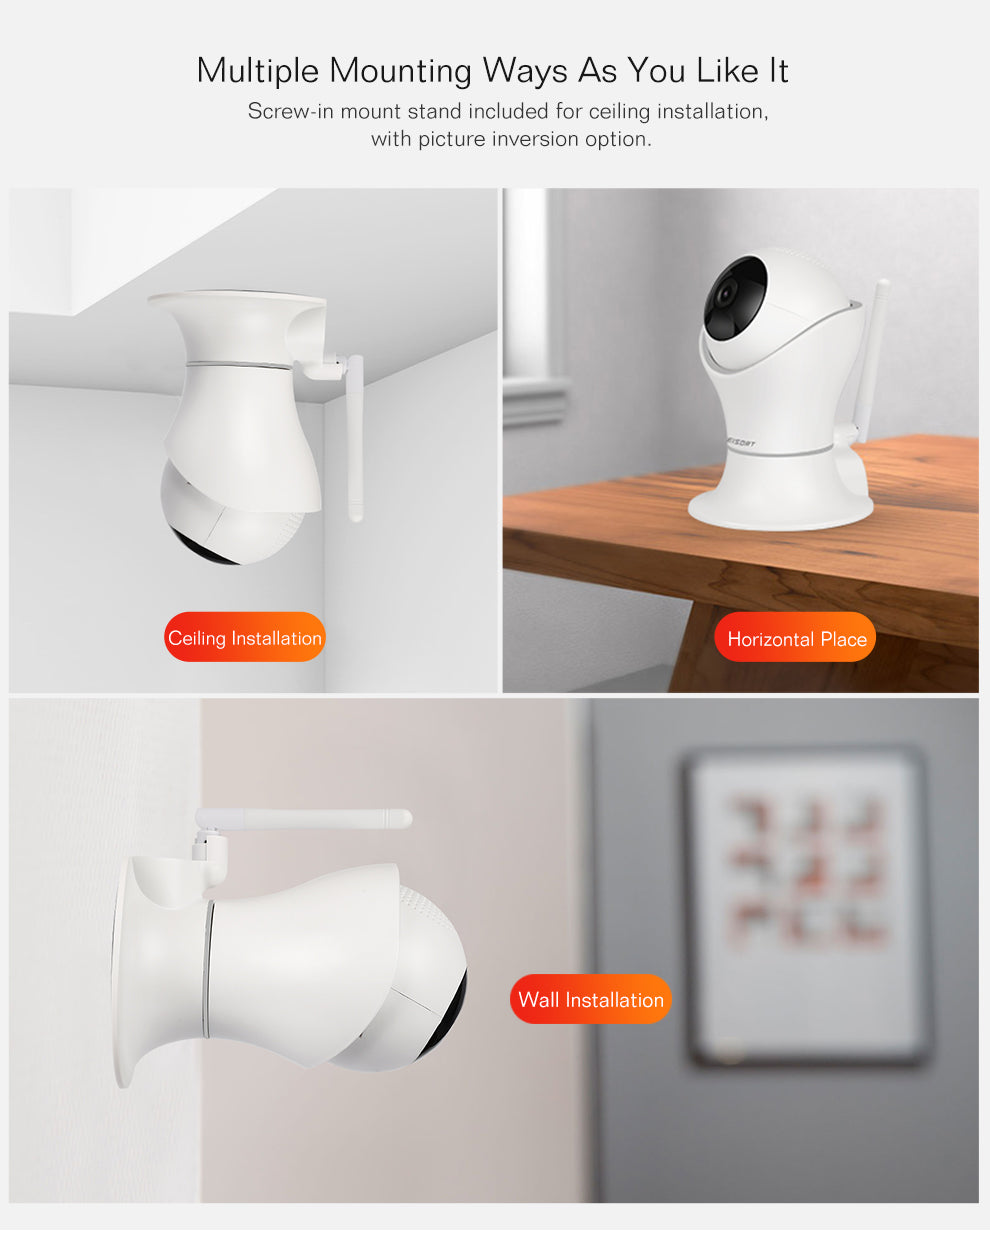 Wireless 1080P WiFi Baby Monitor Camera With 2-Way Audio Motion Detection and Night Vision